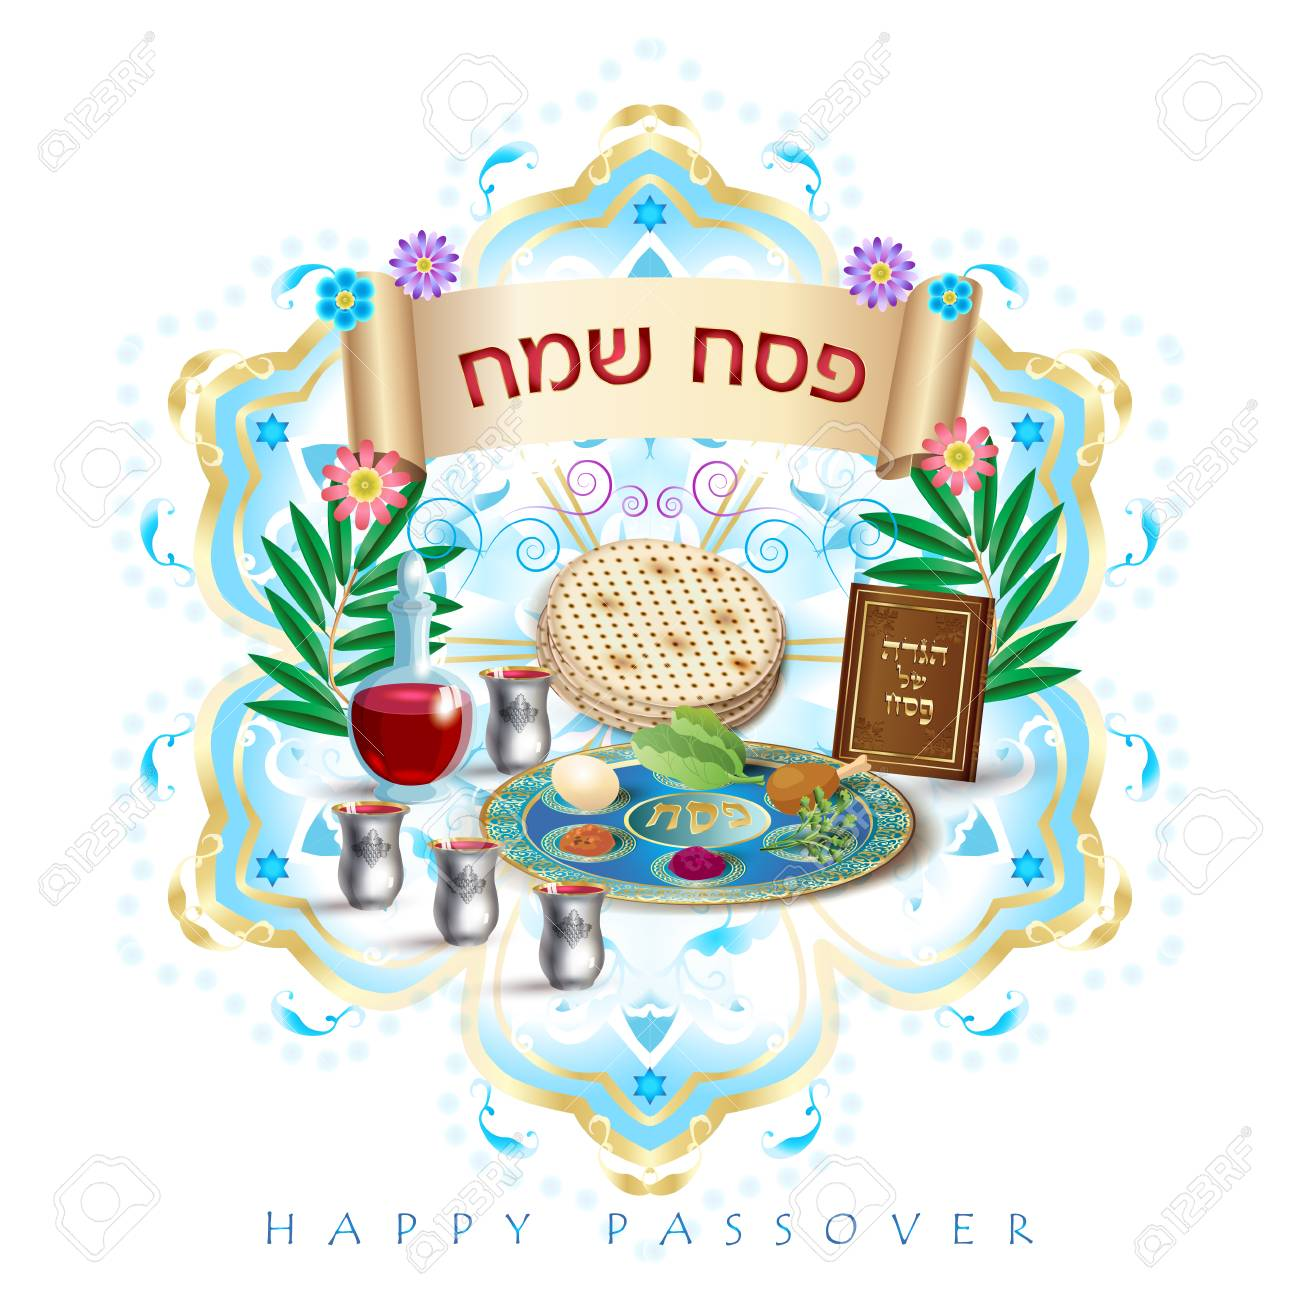 Happy Passover Holiday.